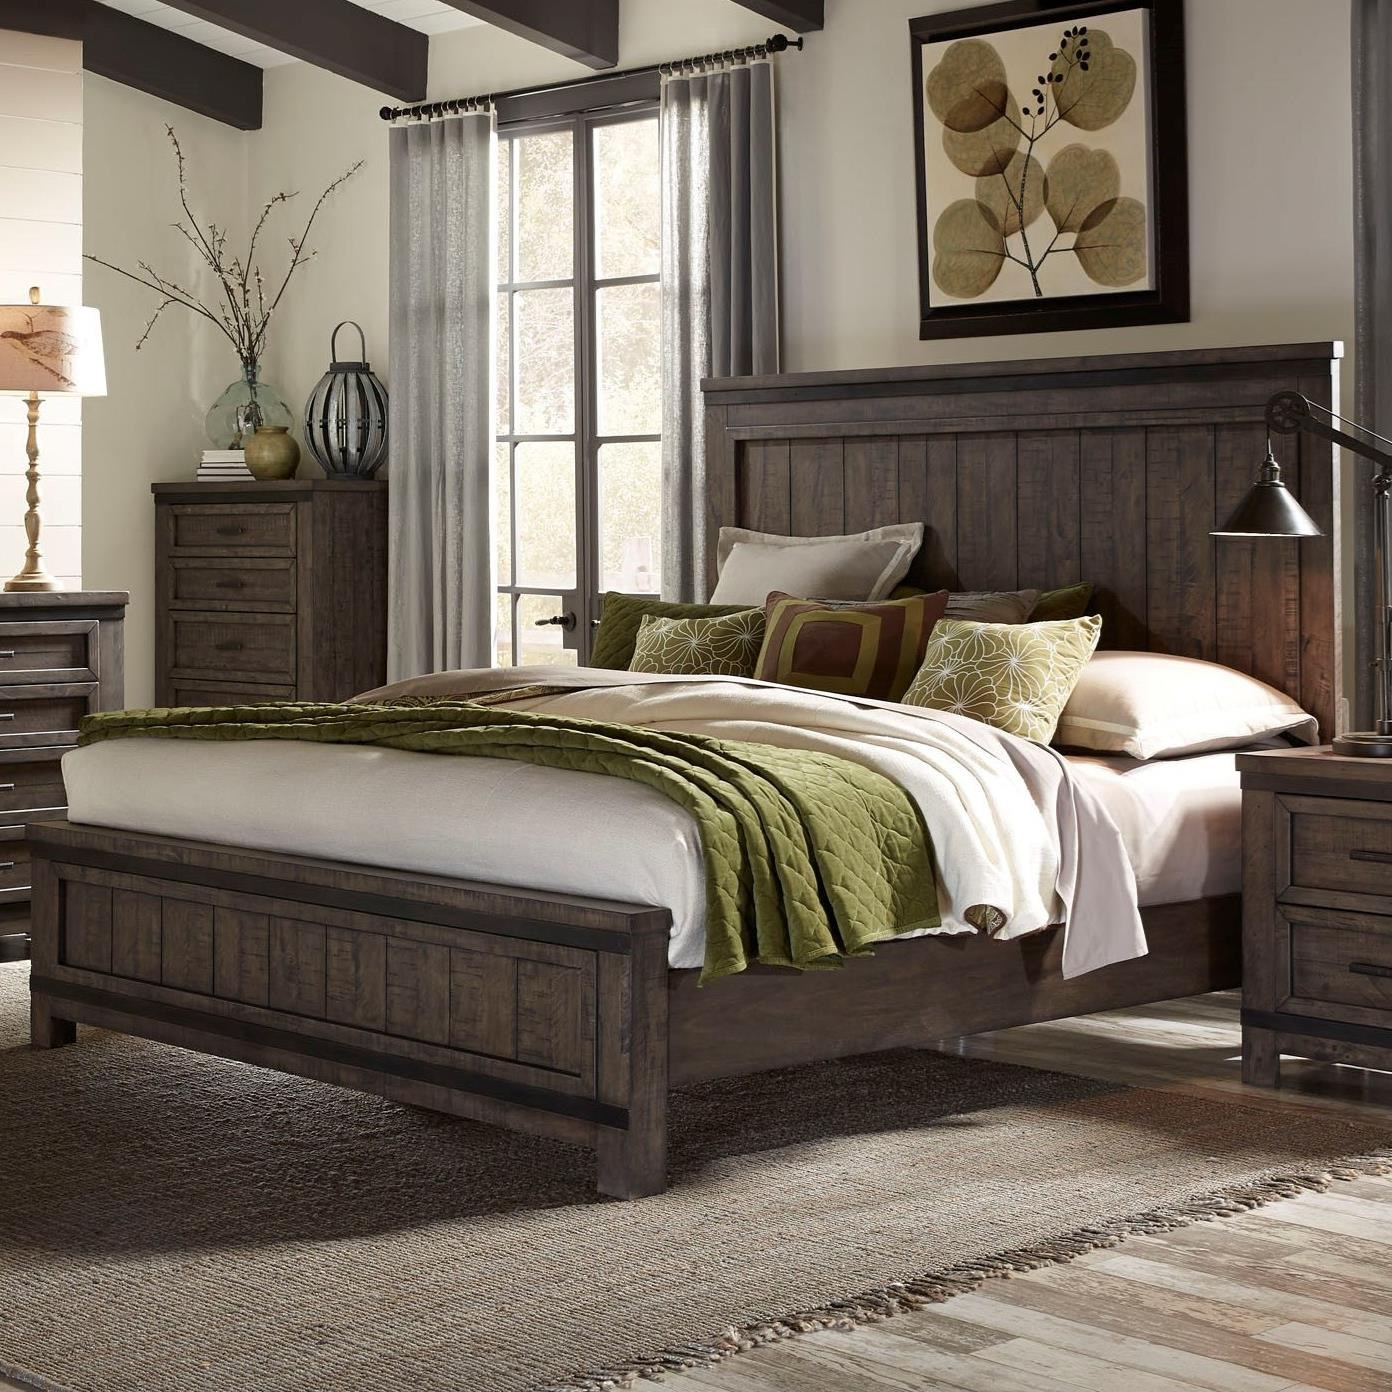 Thornwood Hills Queen Panel Bed by Liberty Furniture at Goods Furniture